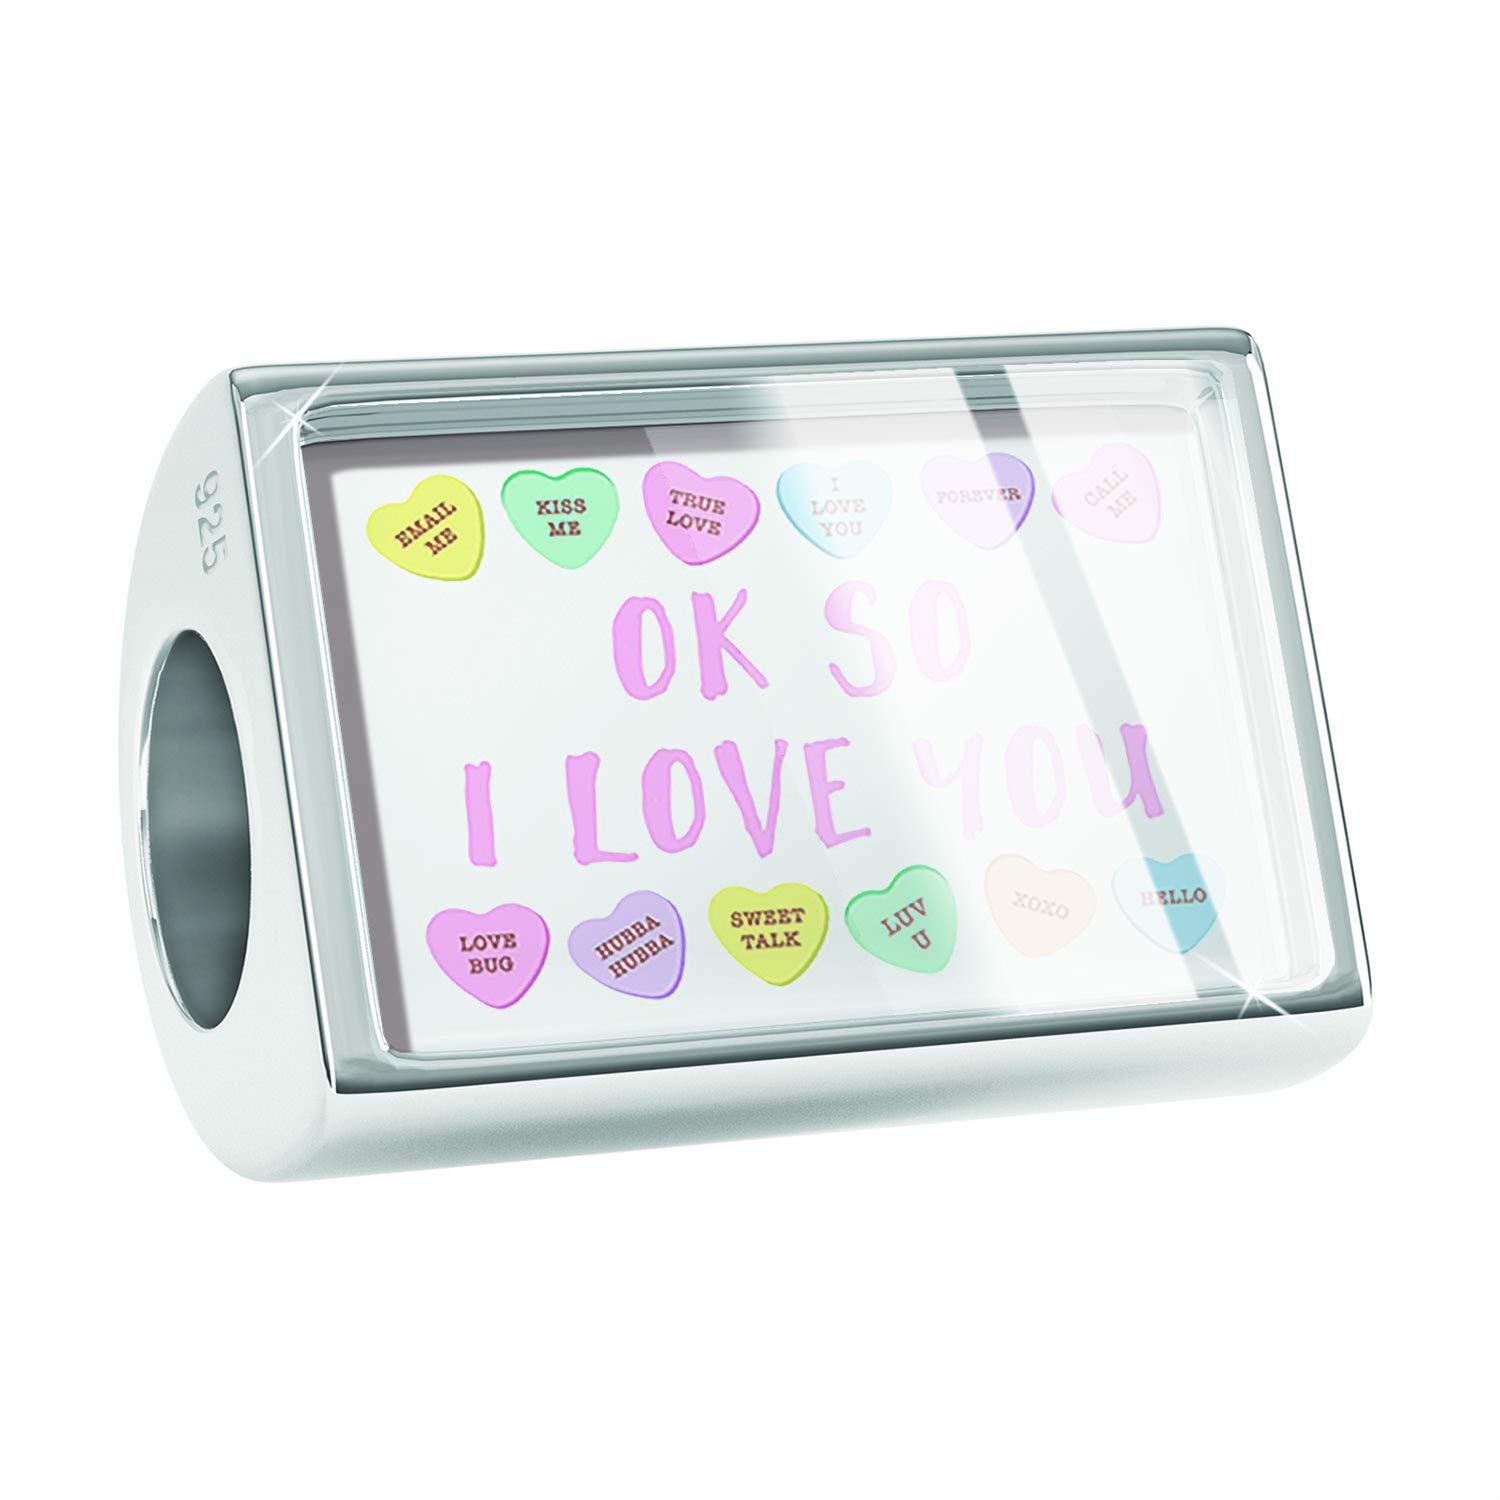 NEONBLOND Custom Charm Ok So I Love You Valentines Day Conversation Hearts Border 925 Sterling Silver Bead